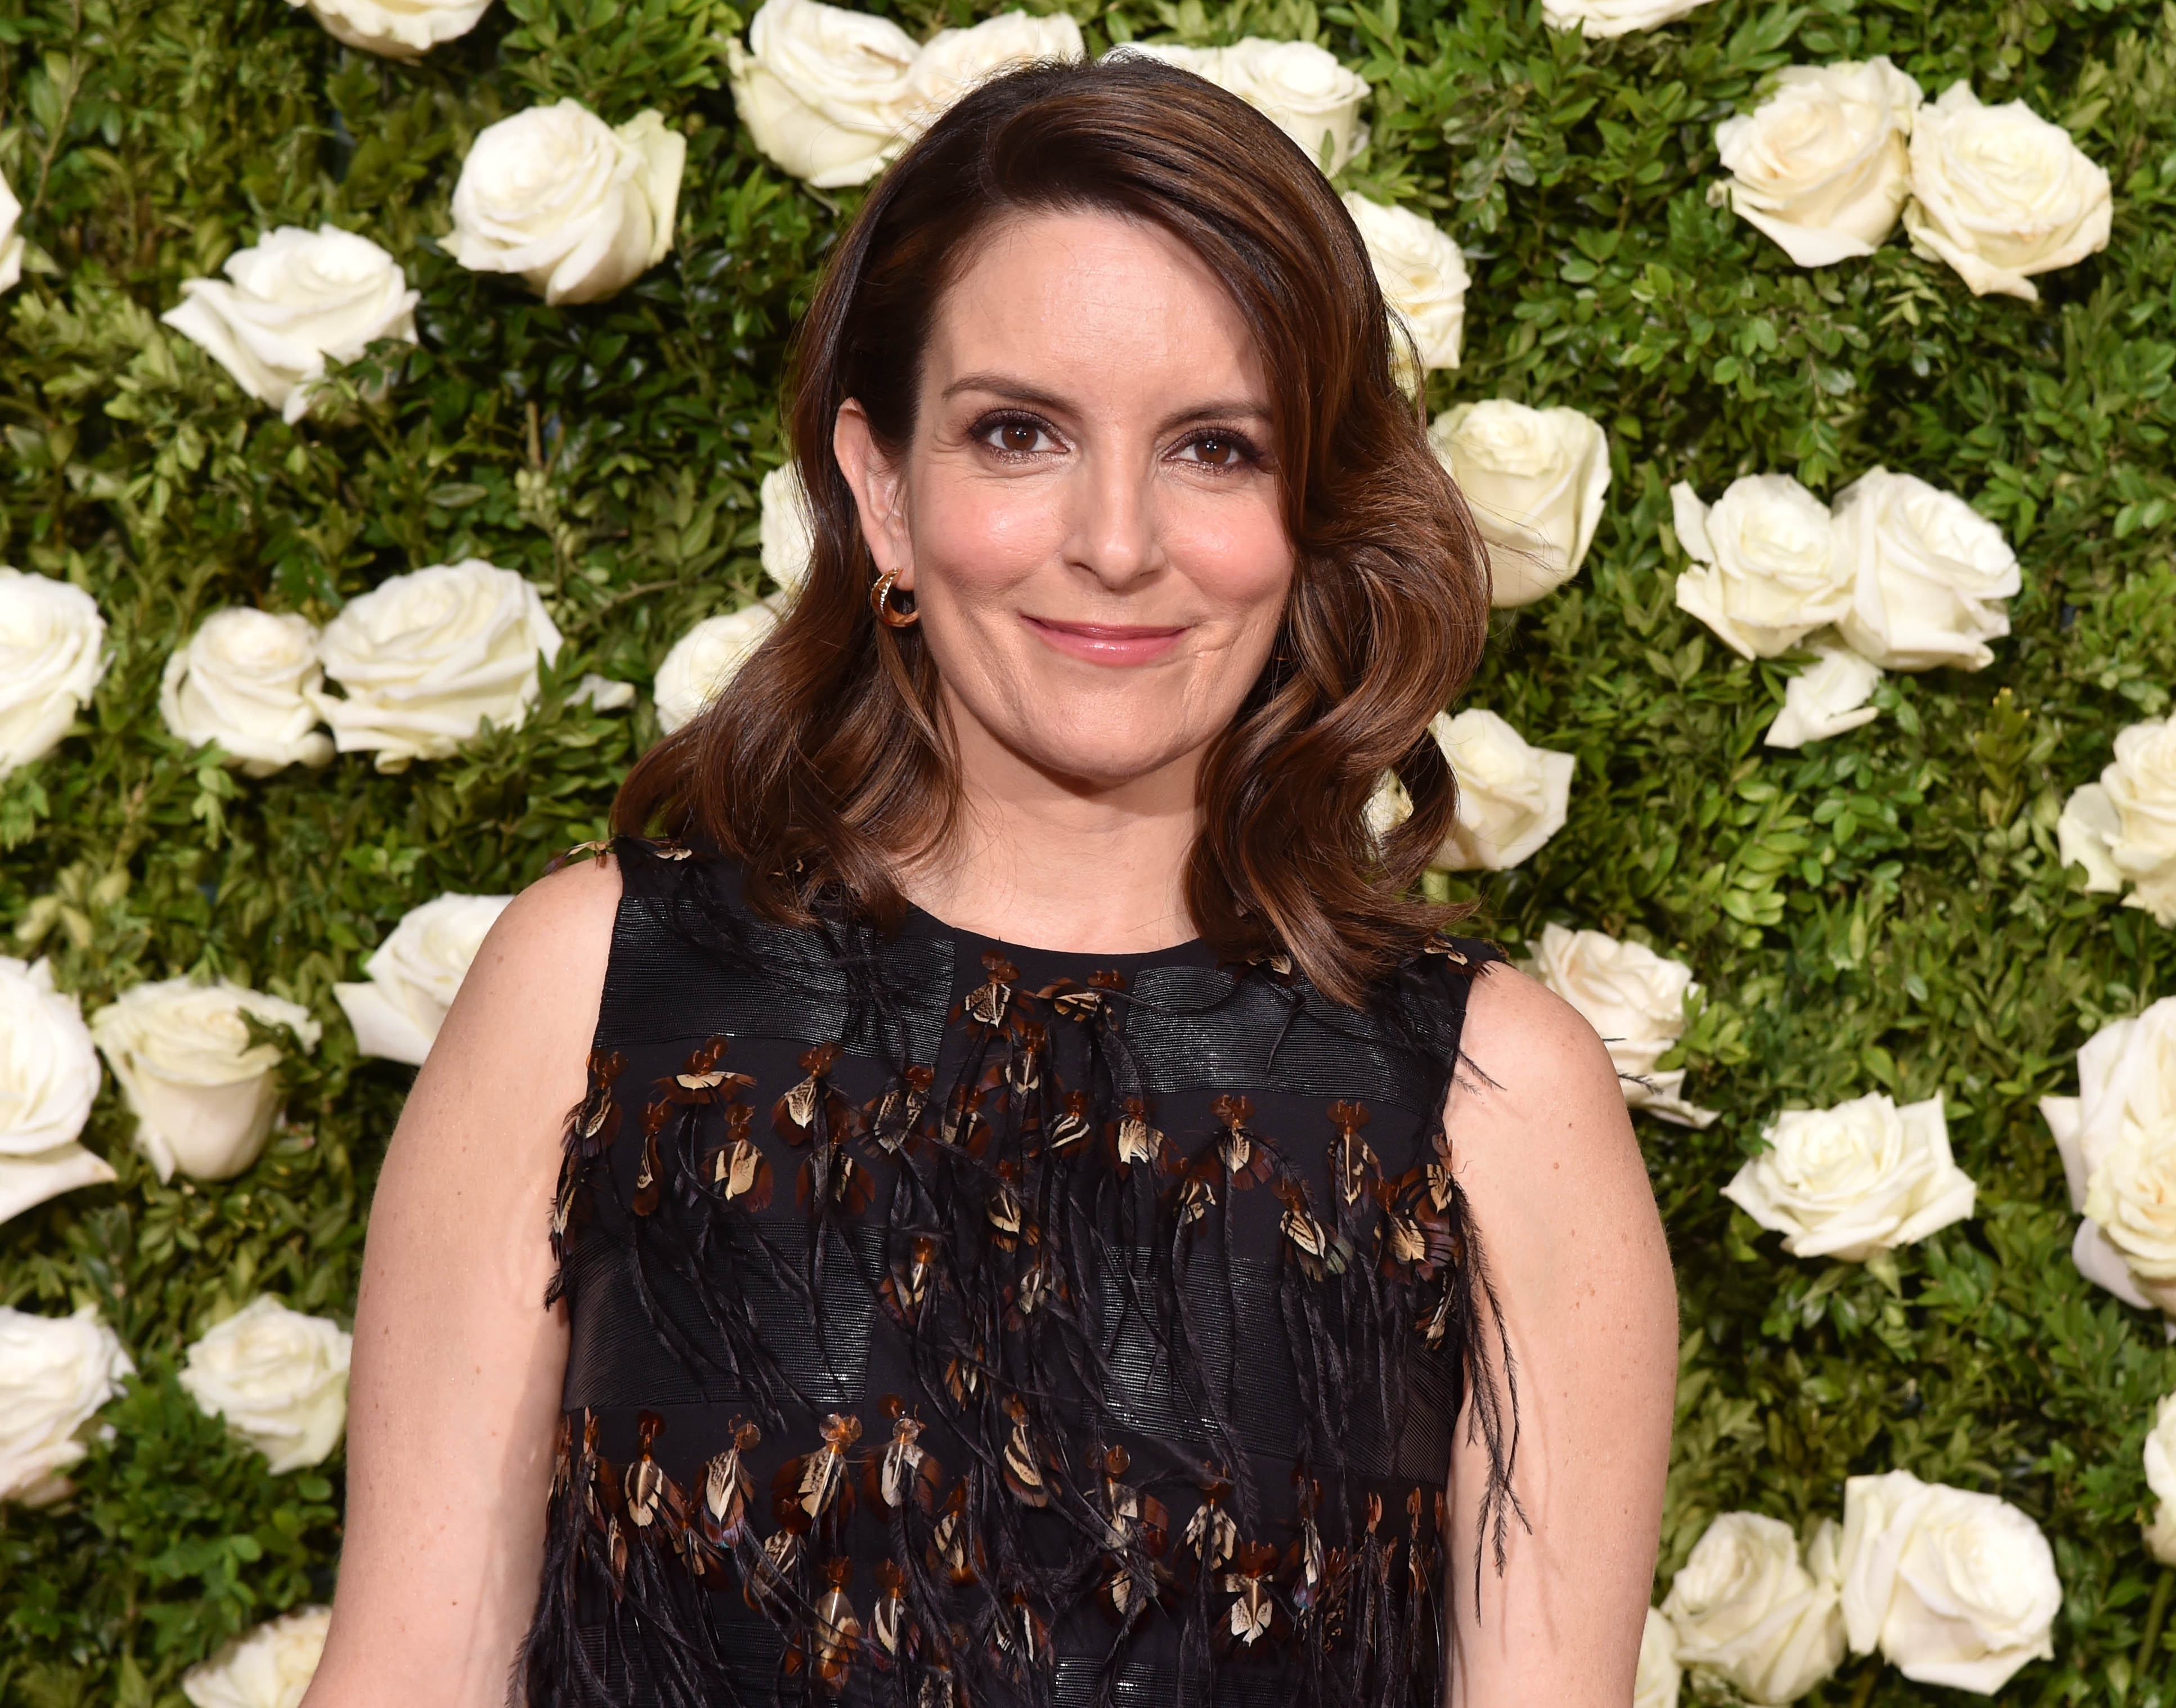 Tina Fey Joining NBC's 'Great News' Is Great News